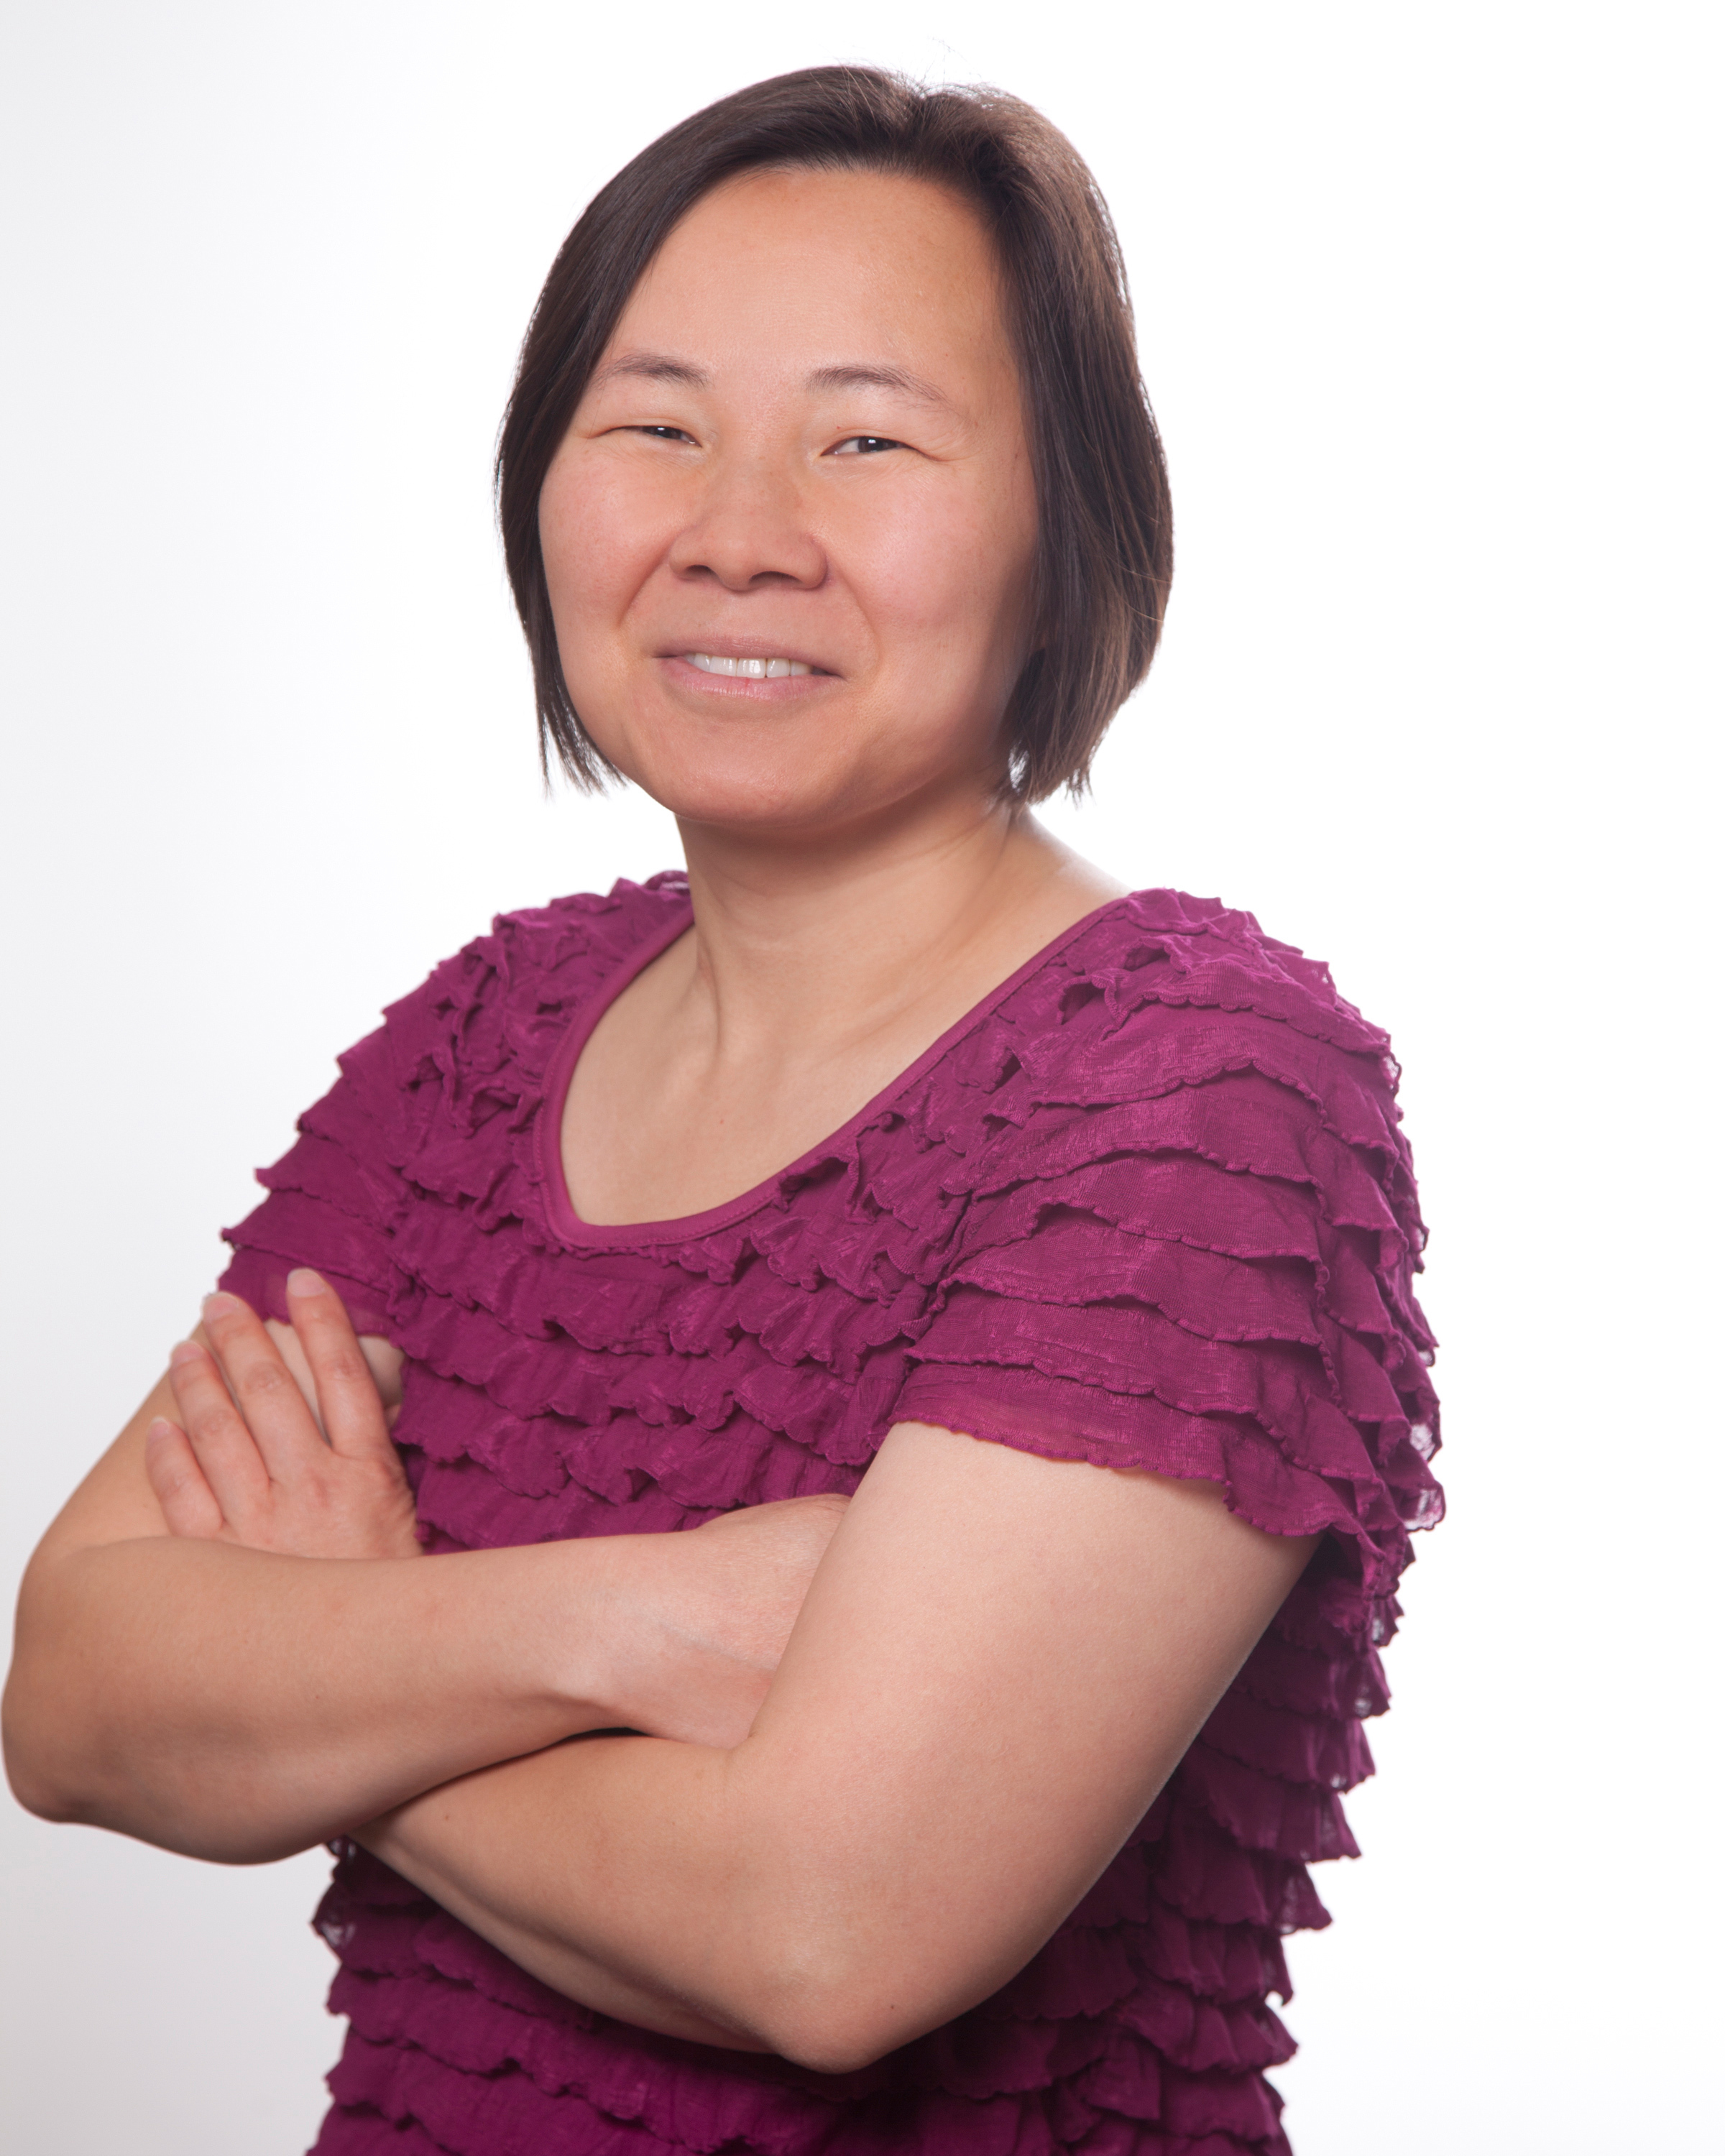 Nanci Yuan, MD, is the medical director of the Sleep Center at Lucile Packard Children's Hospital Stanford. (Photo: Business Wire)